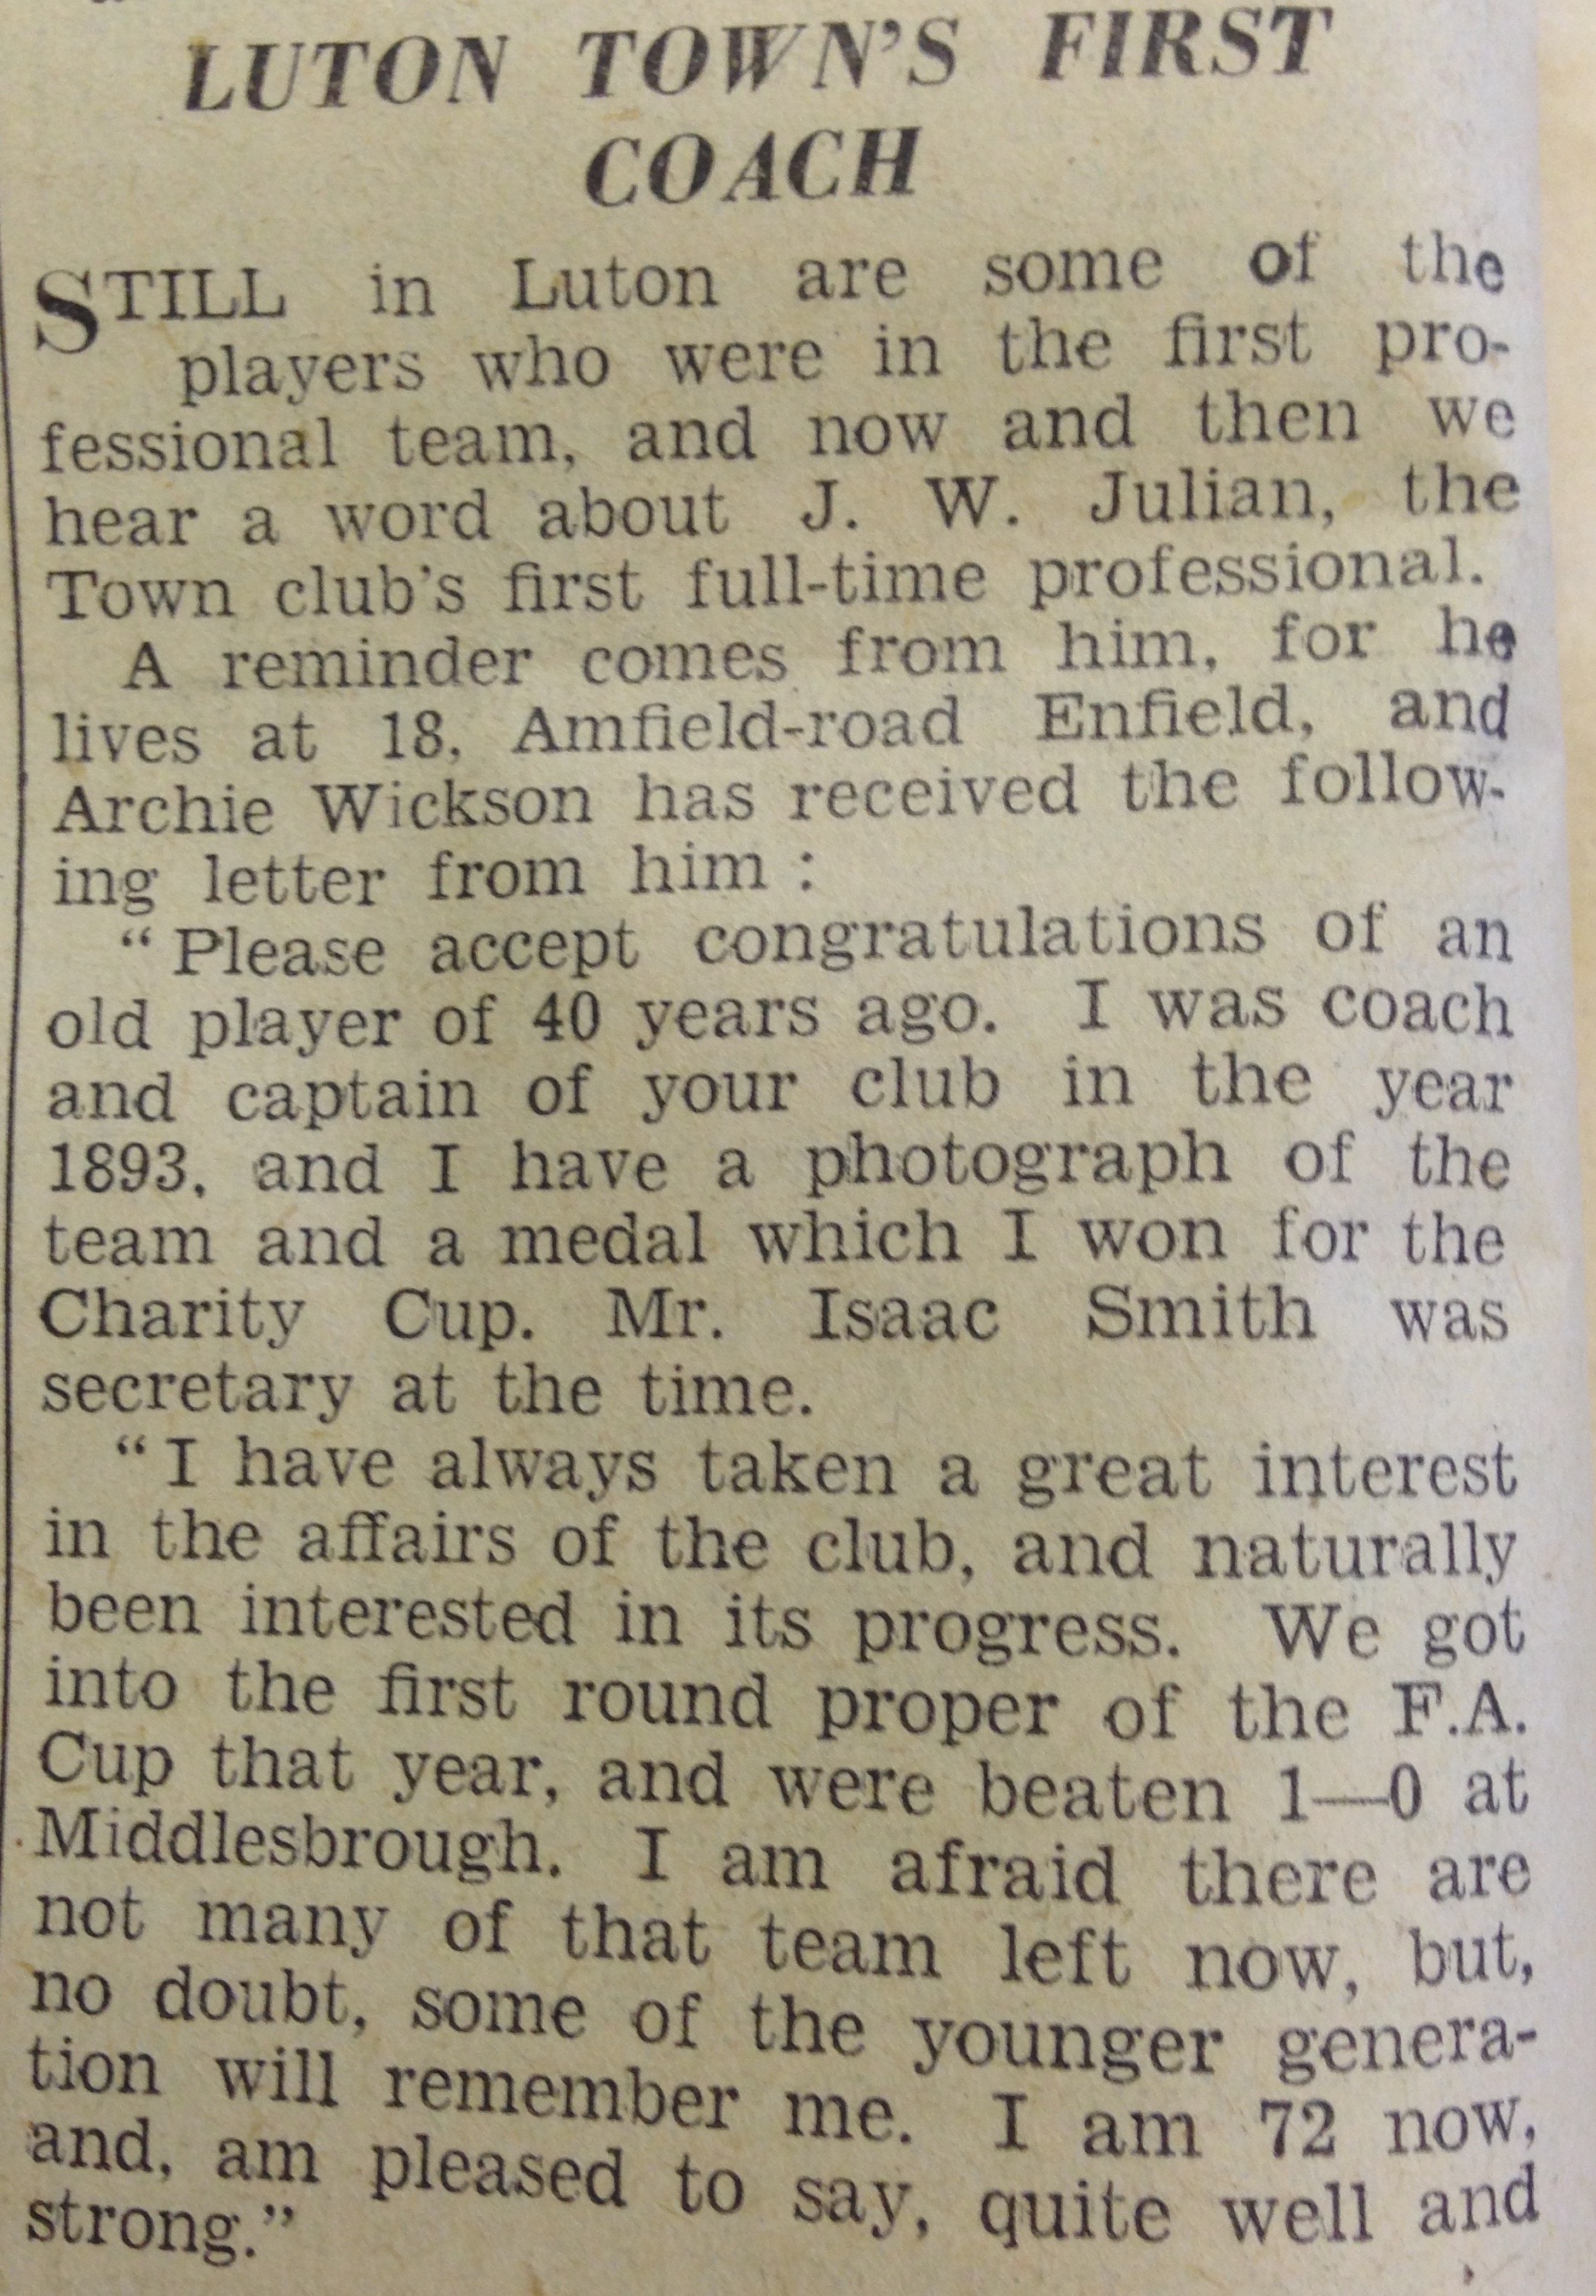 J.W. Julian letter from Luton News of 20th January 1938